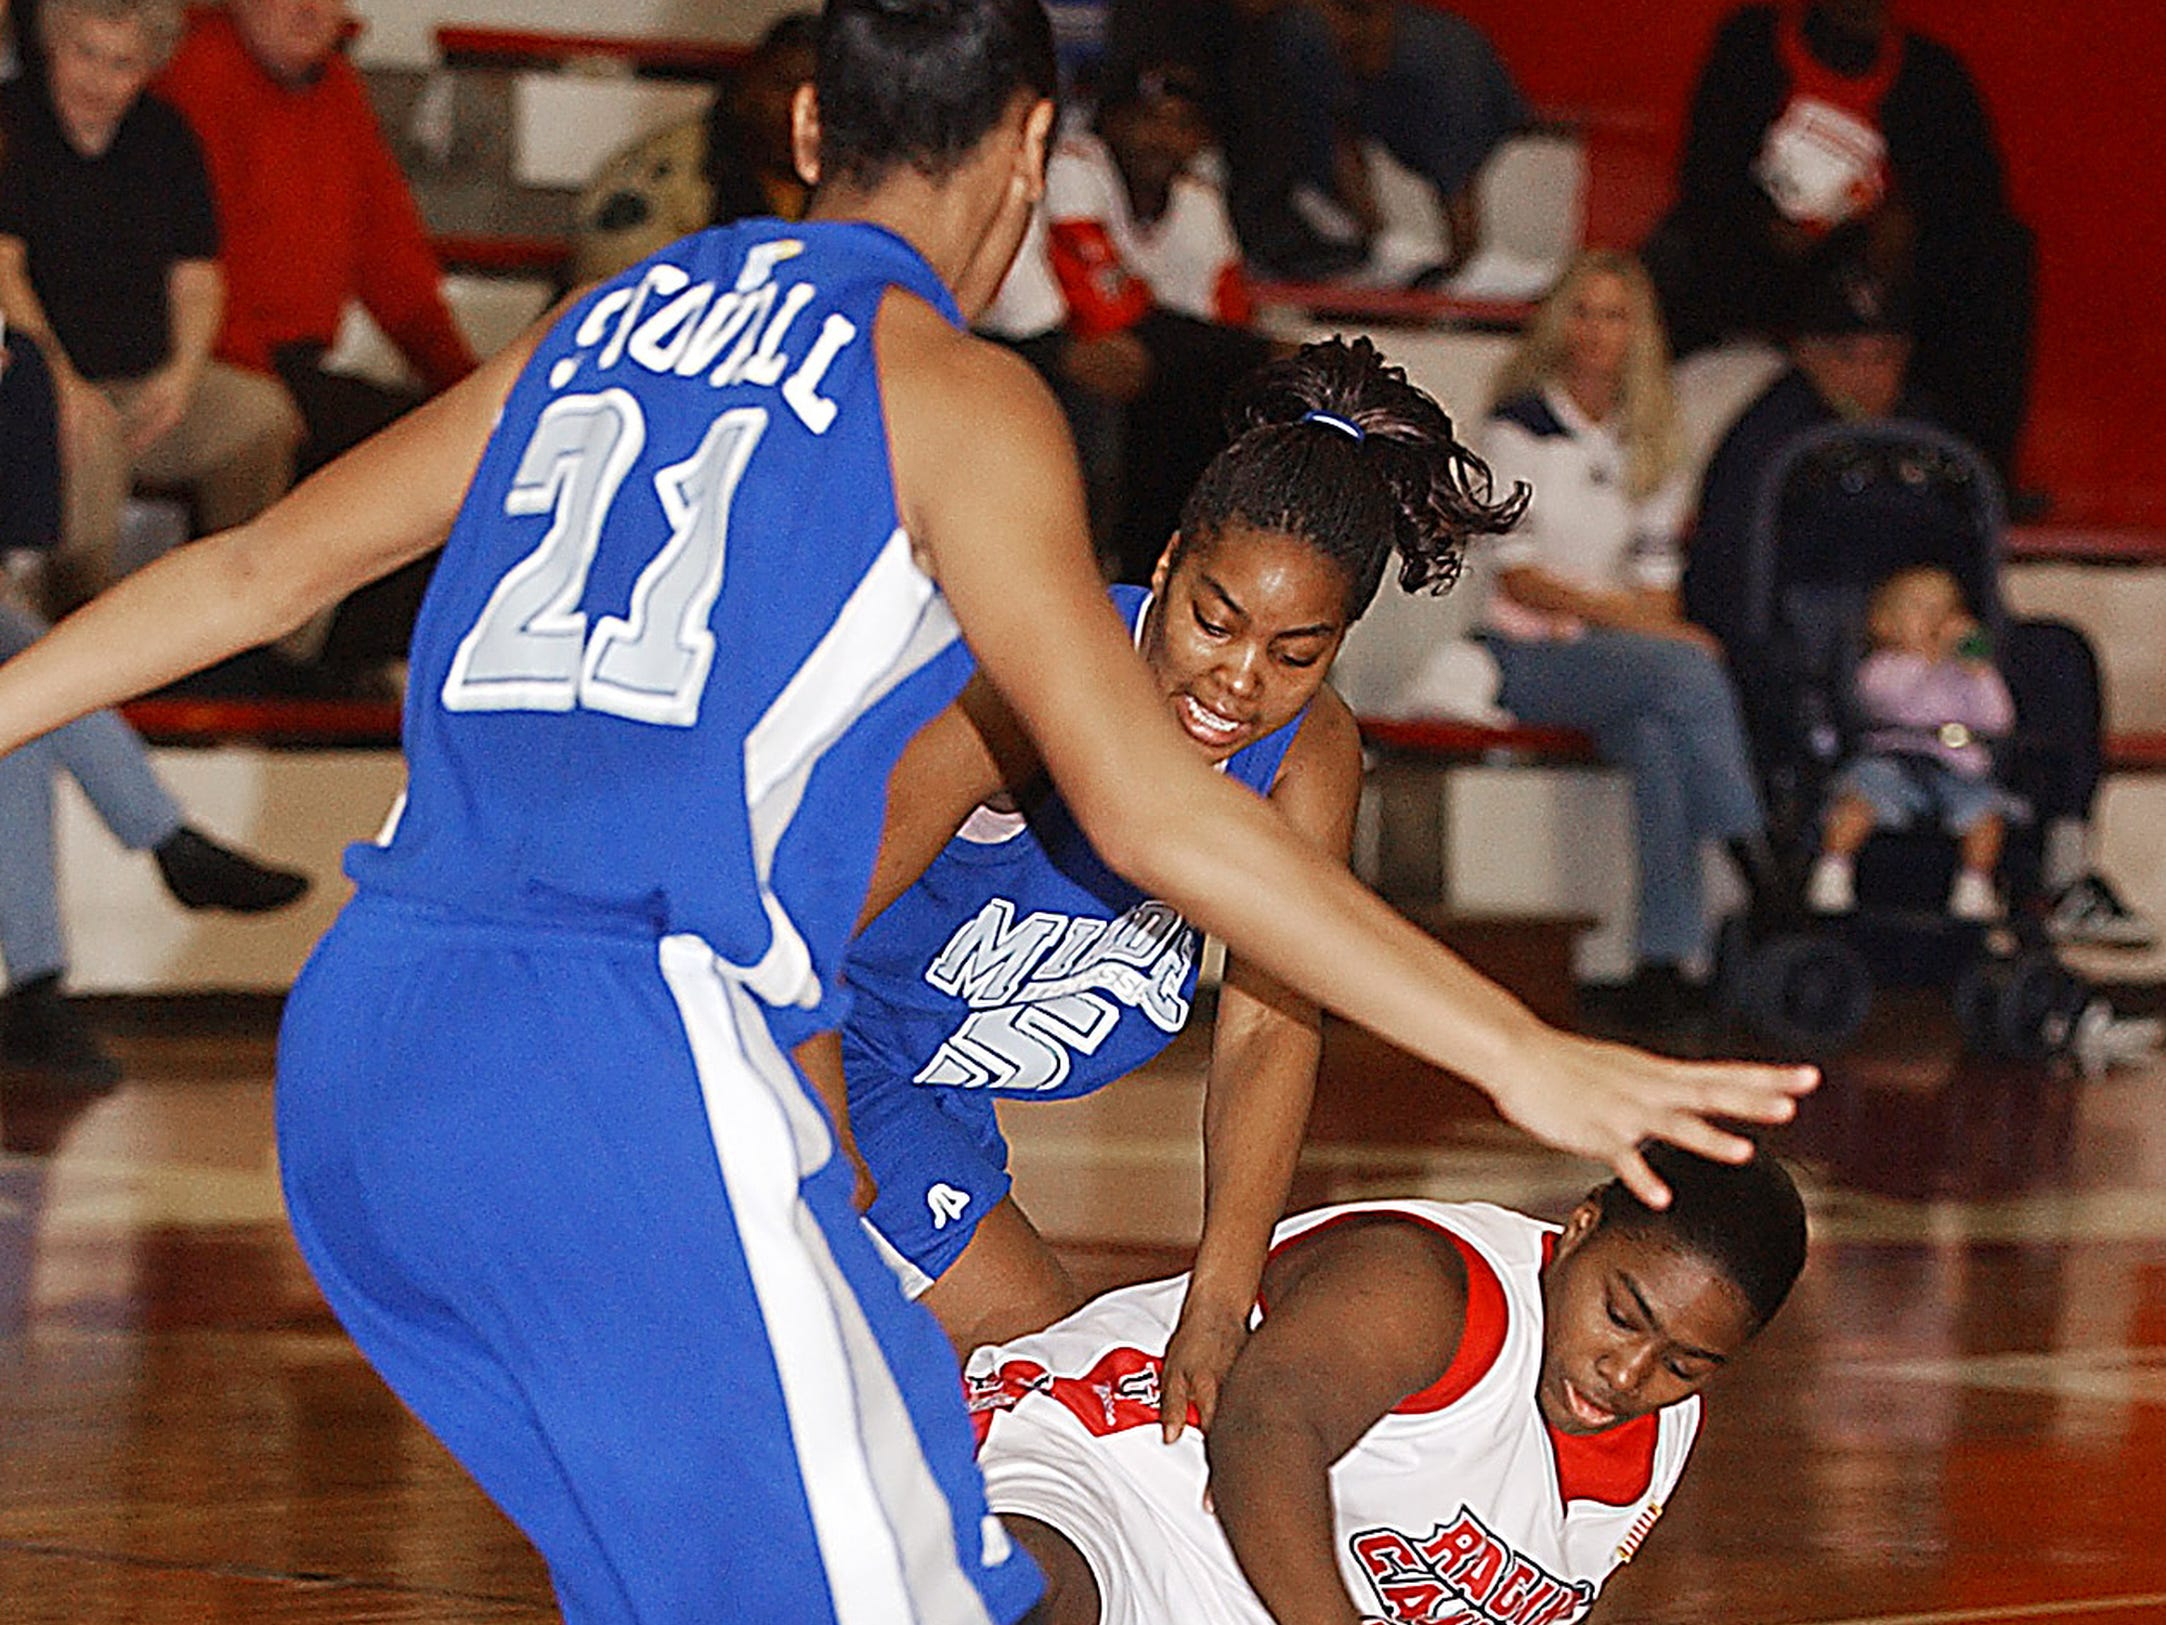 University of Louisiana senior Sharee Glenn struggles for control of a loose ball against Middle Tennessee's Tia Stovall, left, and Keisha McClinic during the match up between the two schools at the Earl K. Long.